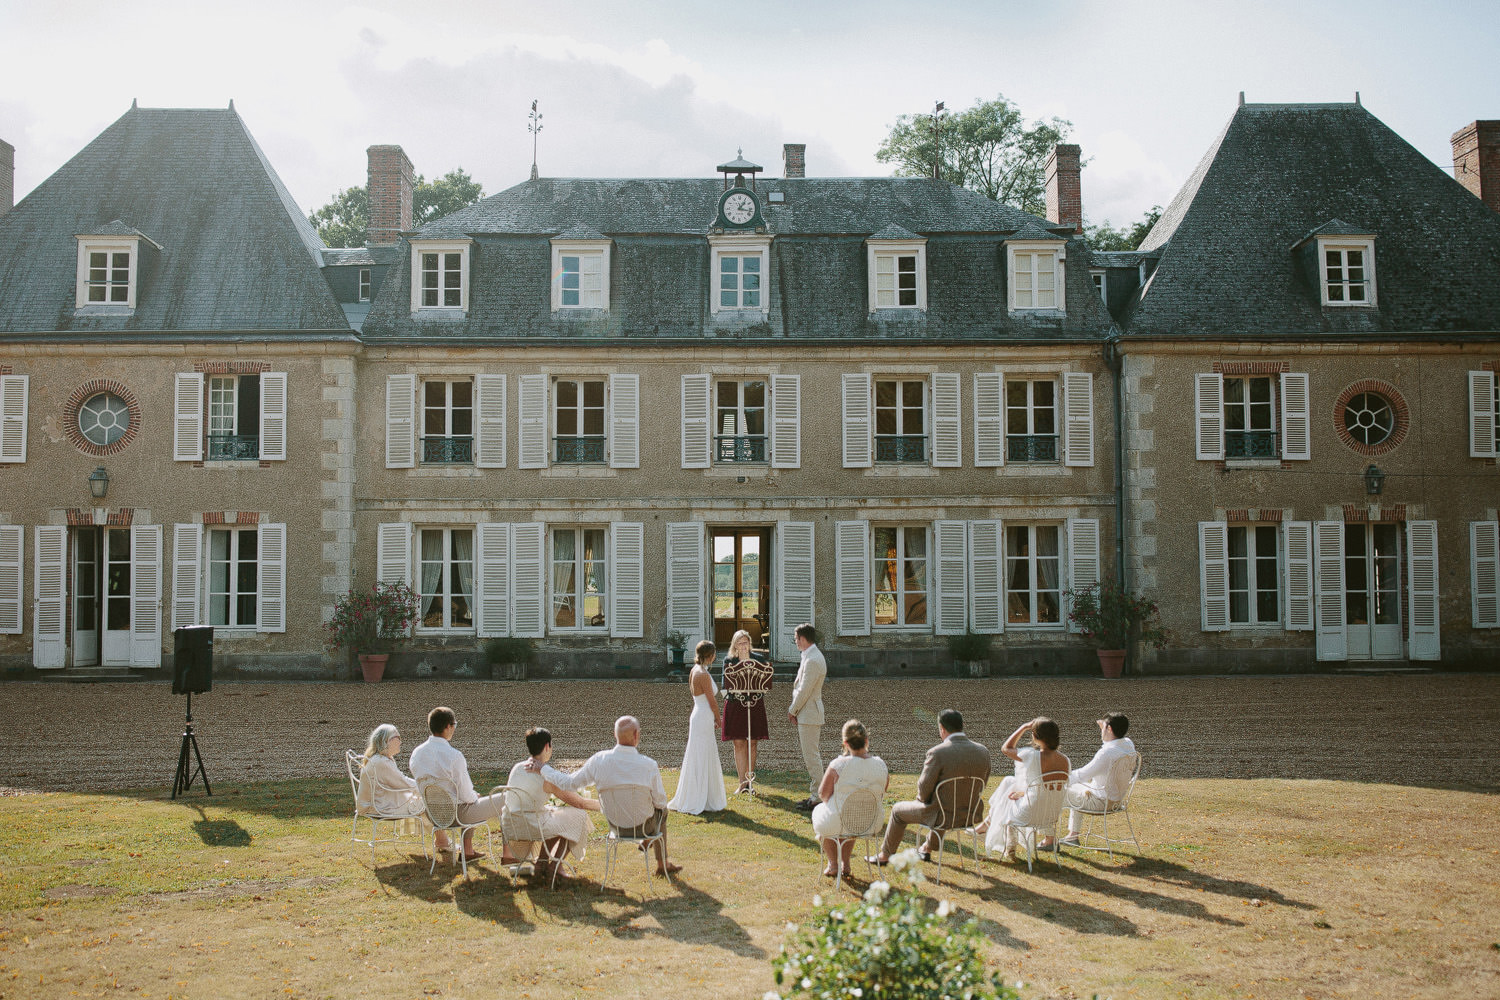 outdoor wedding ceremony in front of Chateau de Bouthonvilliers